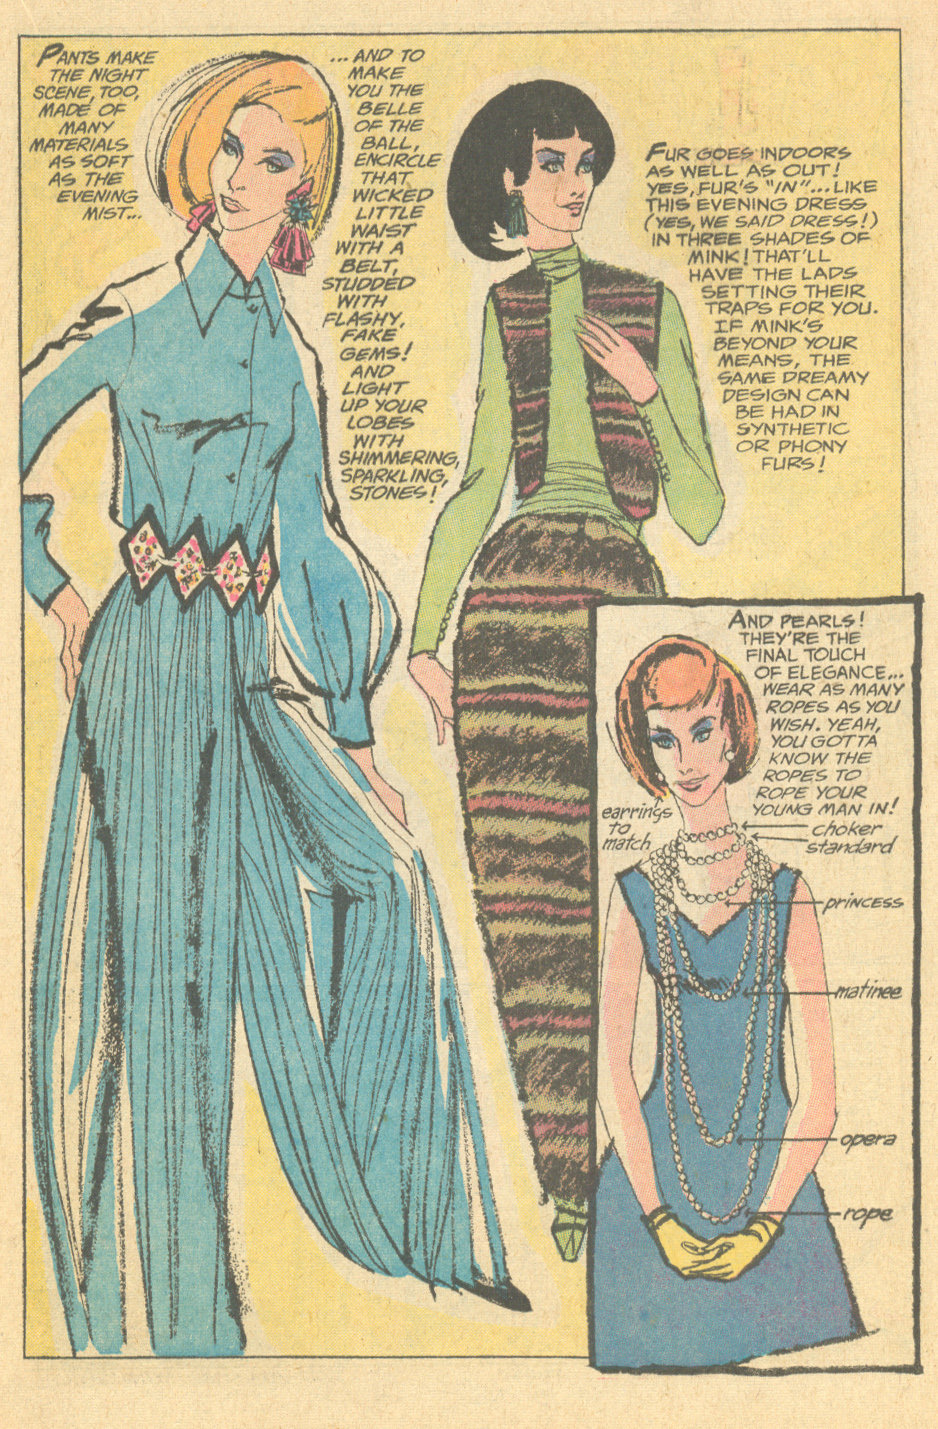 "Not sure what to wear to your upcoming New Year's Eve party? Take a few cues from ""Mad Mad Modes for Moderns"" as featured in Girls' Romances #146 (January 1970)!"